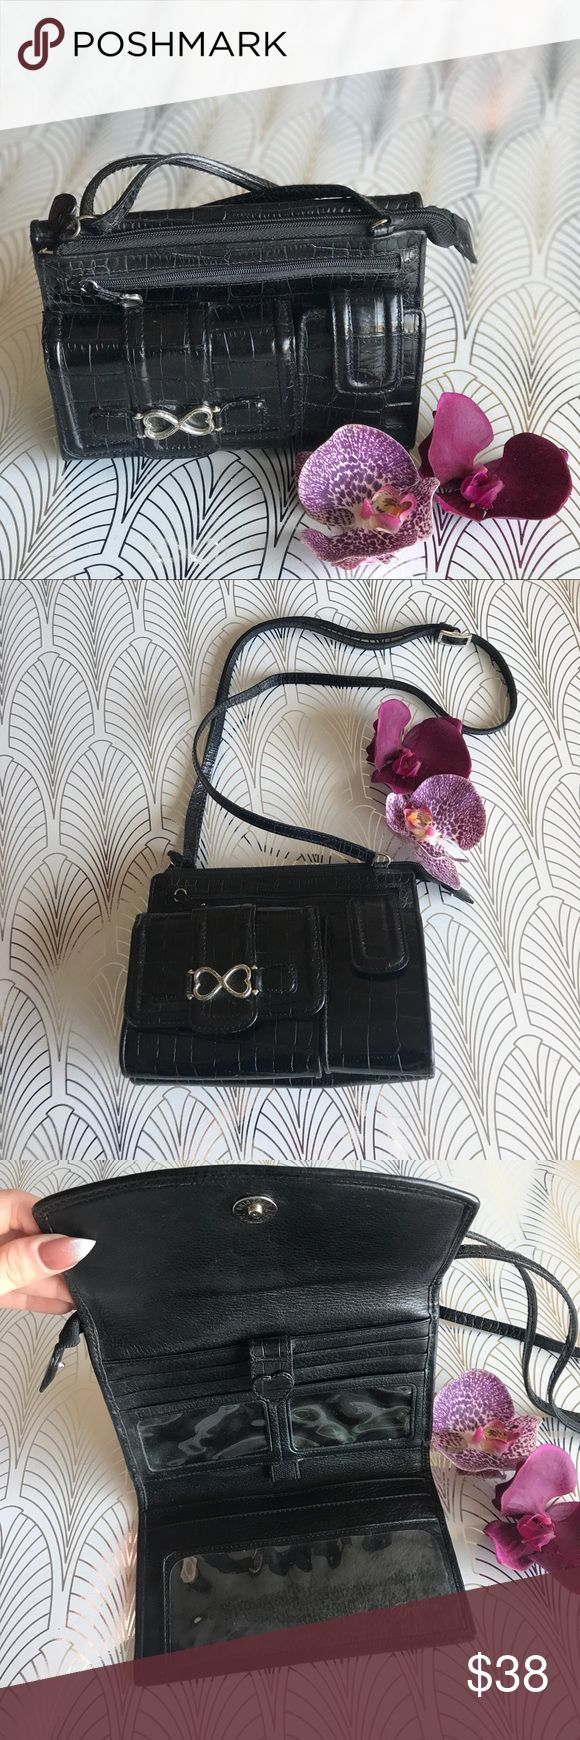 Vintage black patent leather Brighton purse wallet Totally vintage black patent leather crossbody organizer purse from Brighton, complete with cell phone slot the perfect size for your old Nokia flip phone or your favorite lipstick! No need to carry a wallet, this bag has it all, from coin purse and credit card pocket to checkbook holder and ID slots. Beautiful floral liner and silver heart accents. Handbag is in good vintage condition. All zippers function, no rips or tears. Bag measures…